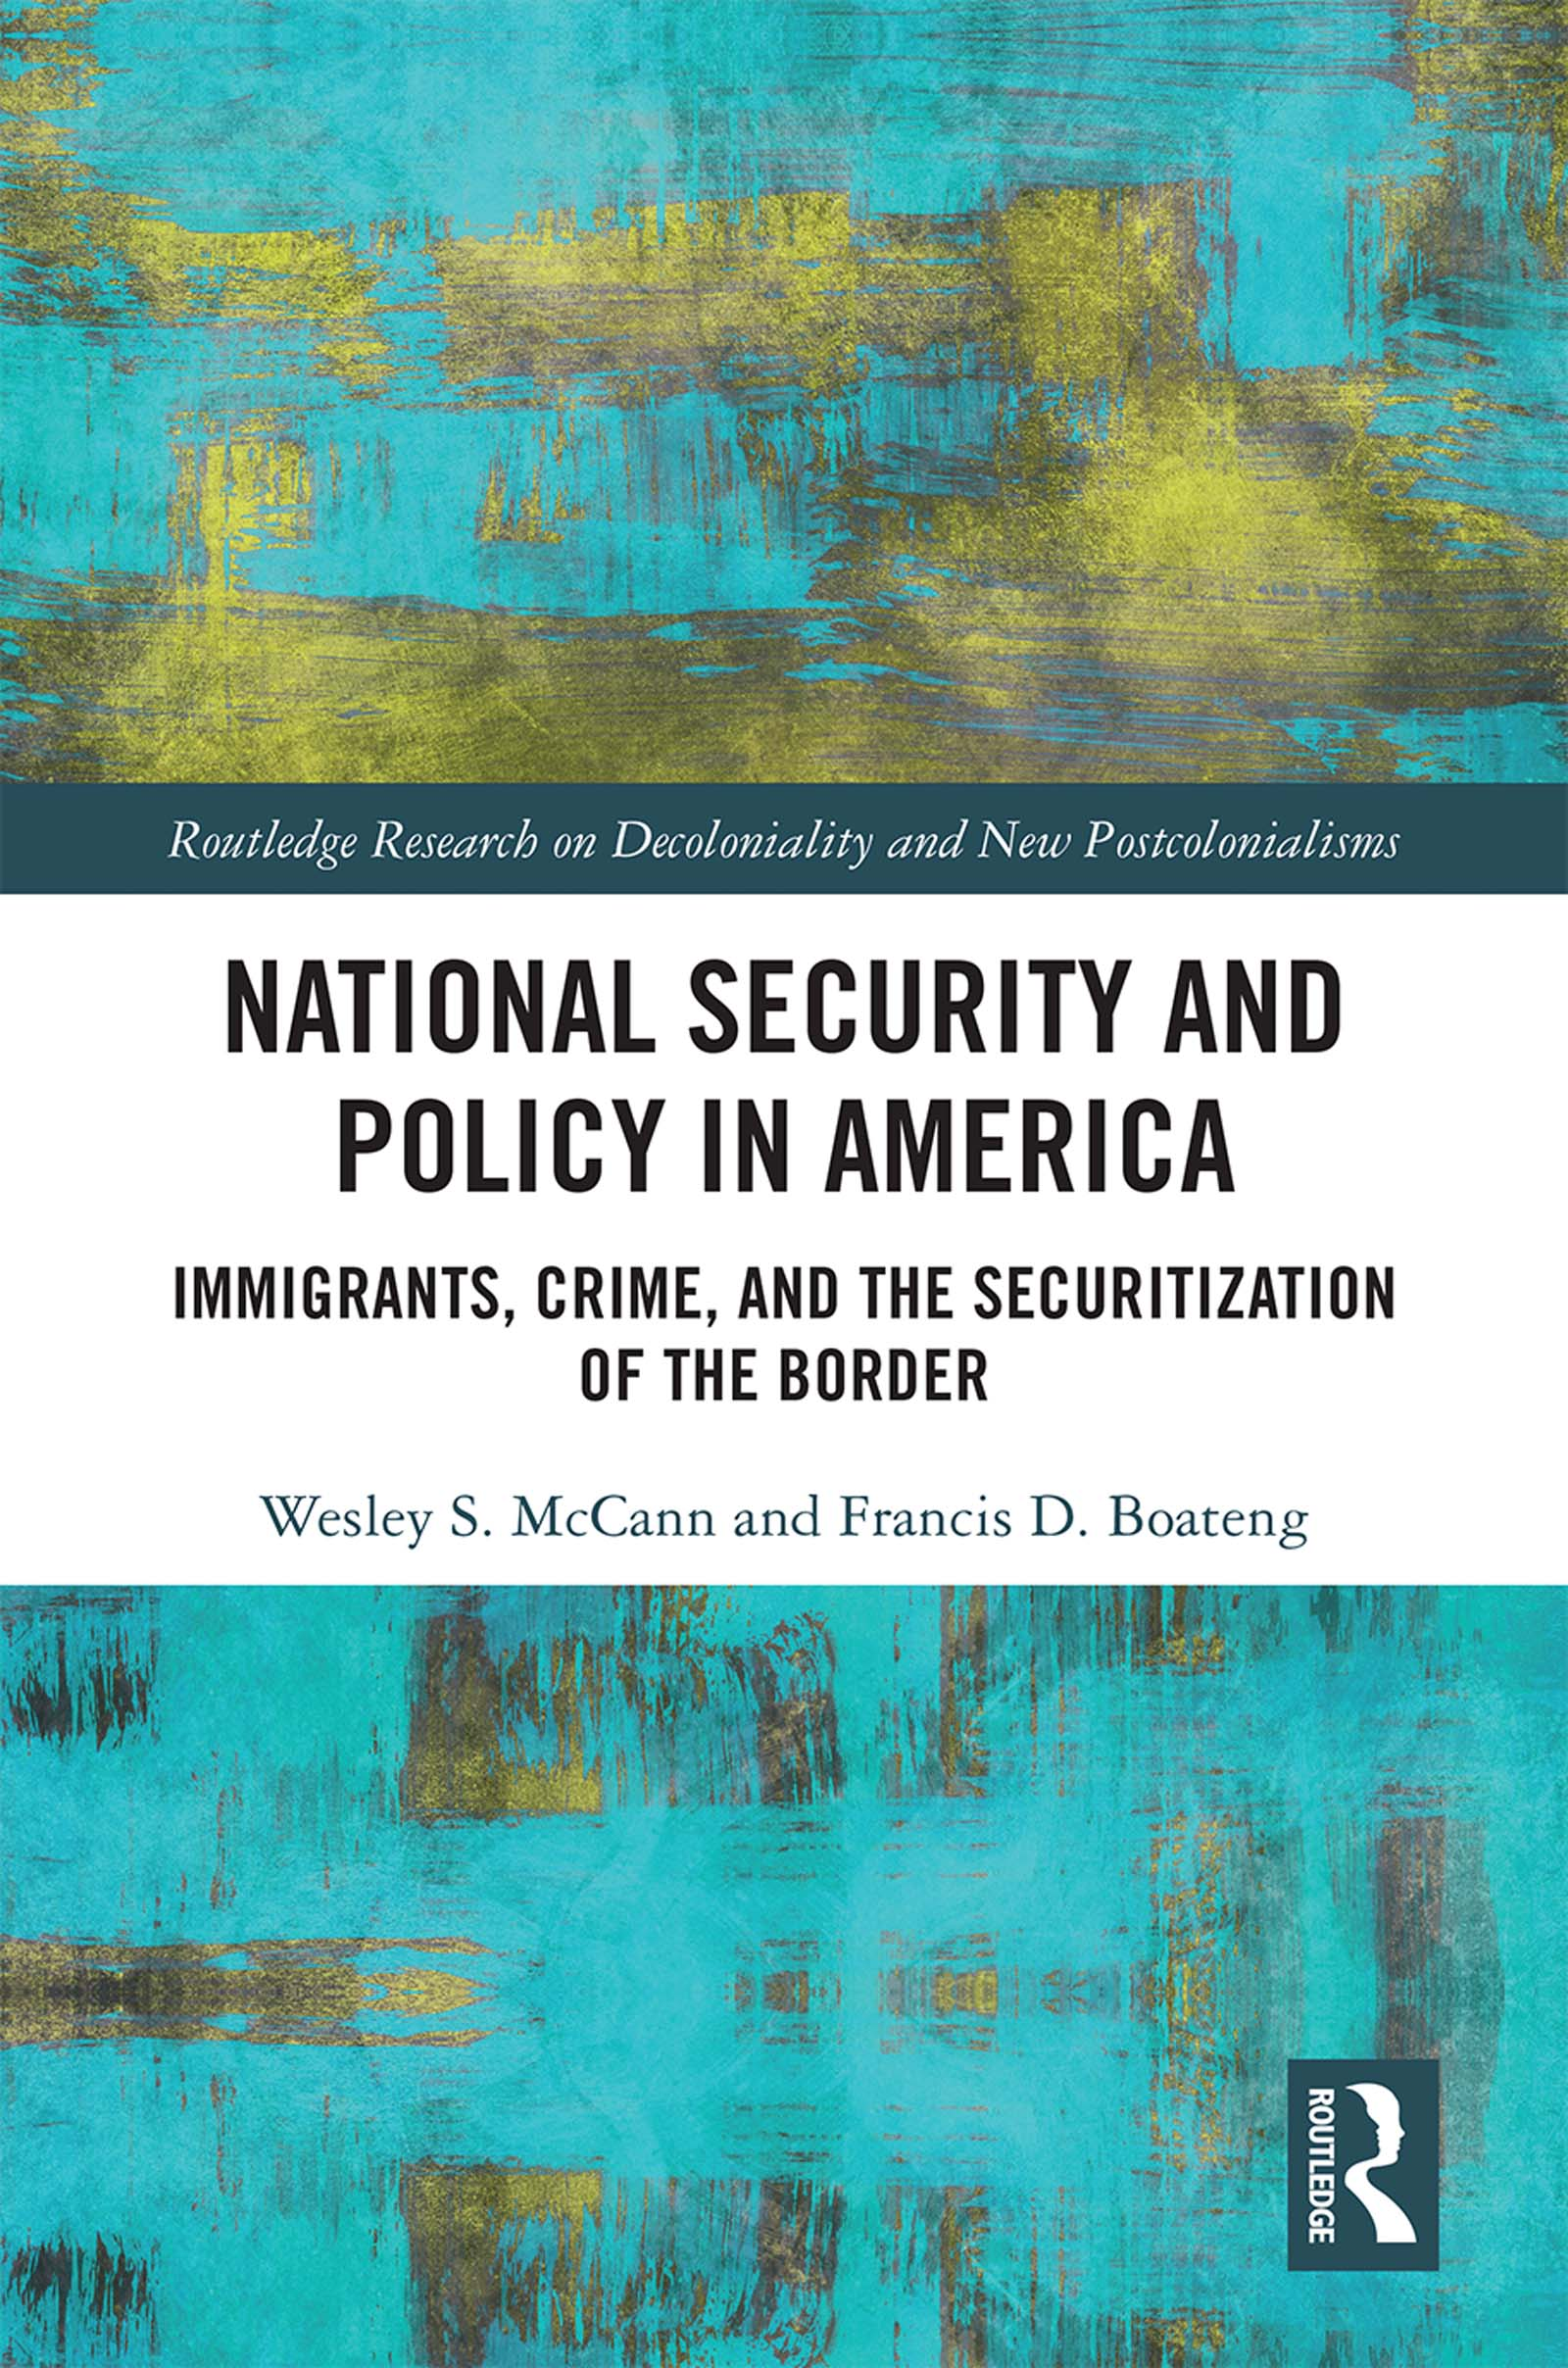 National Security and Policy in America